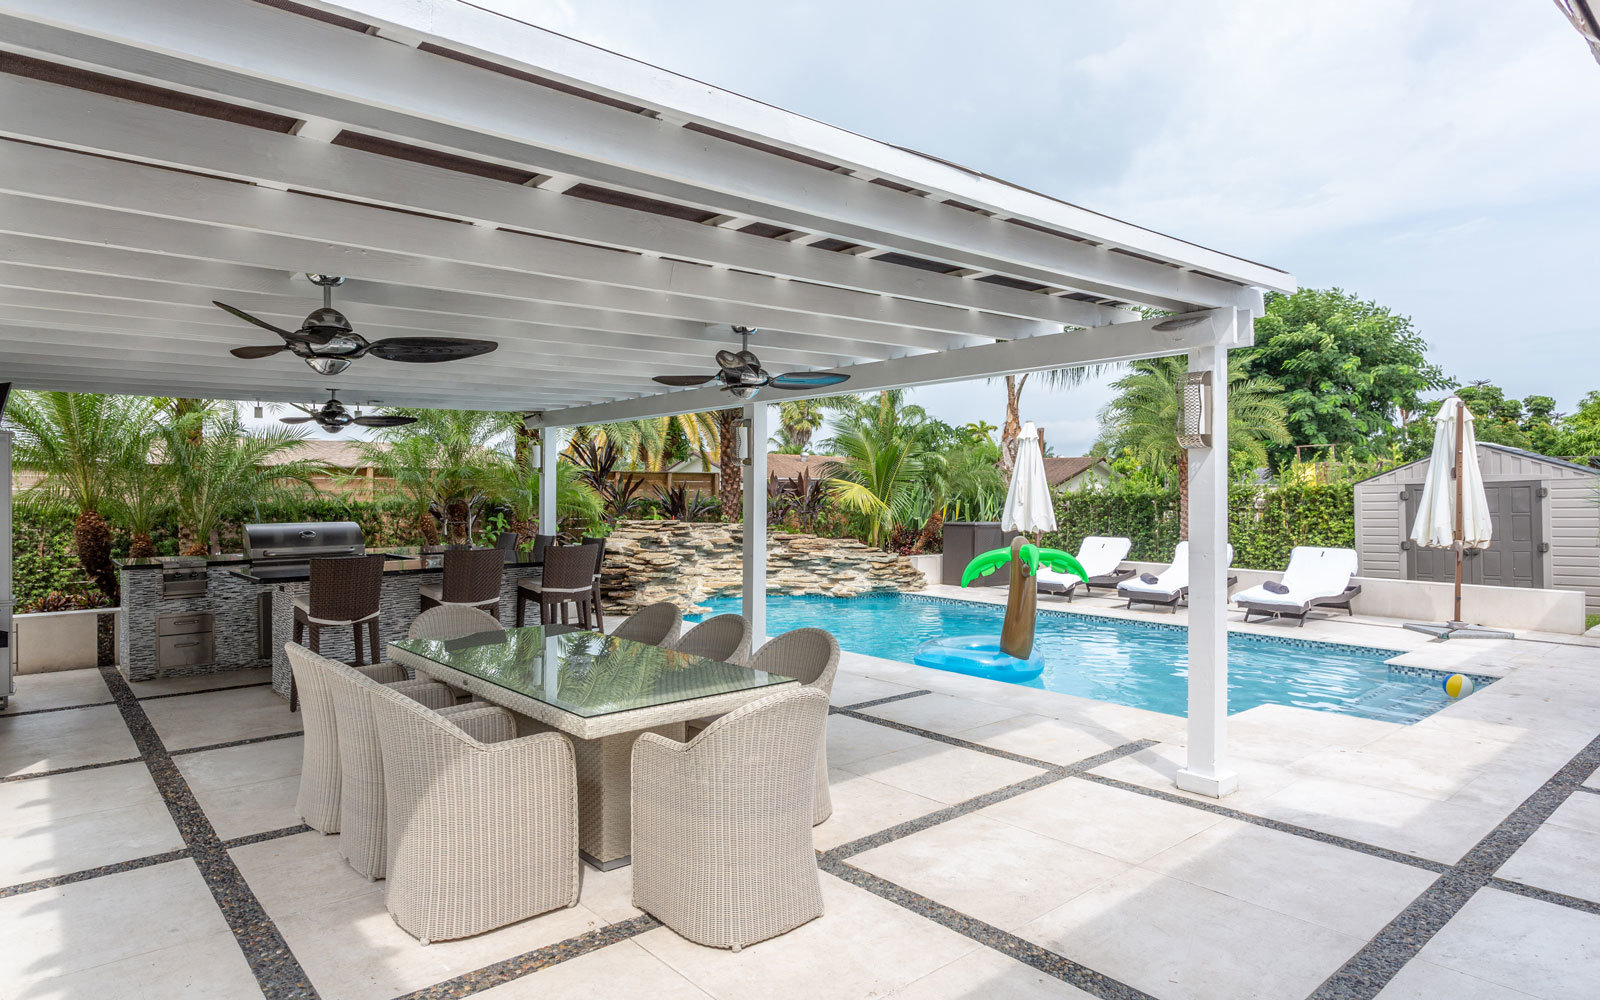 These Are Miami's Most Sought-after Airbnbs